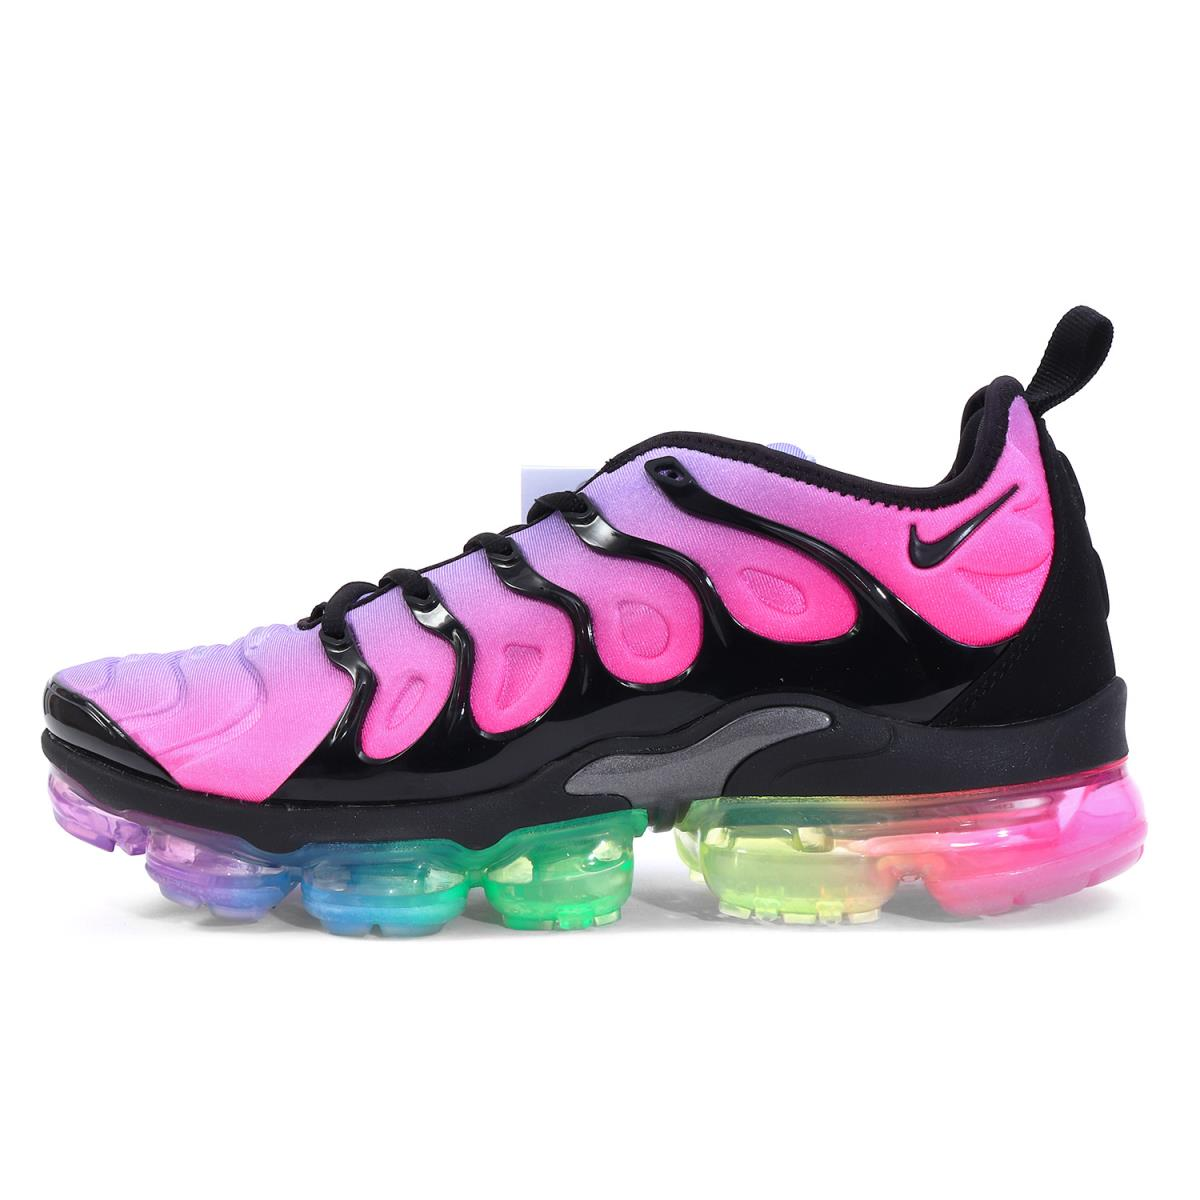 2b44e1f053b384 NIKE (Nike) AIR VAPORMAX PLUS BETRUE (AR4791-500) purple plus X black X  pink blast US10(28cm)